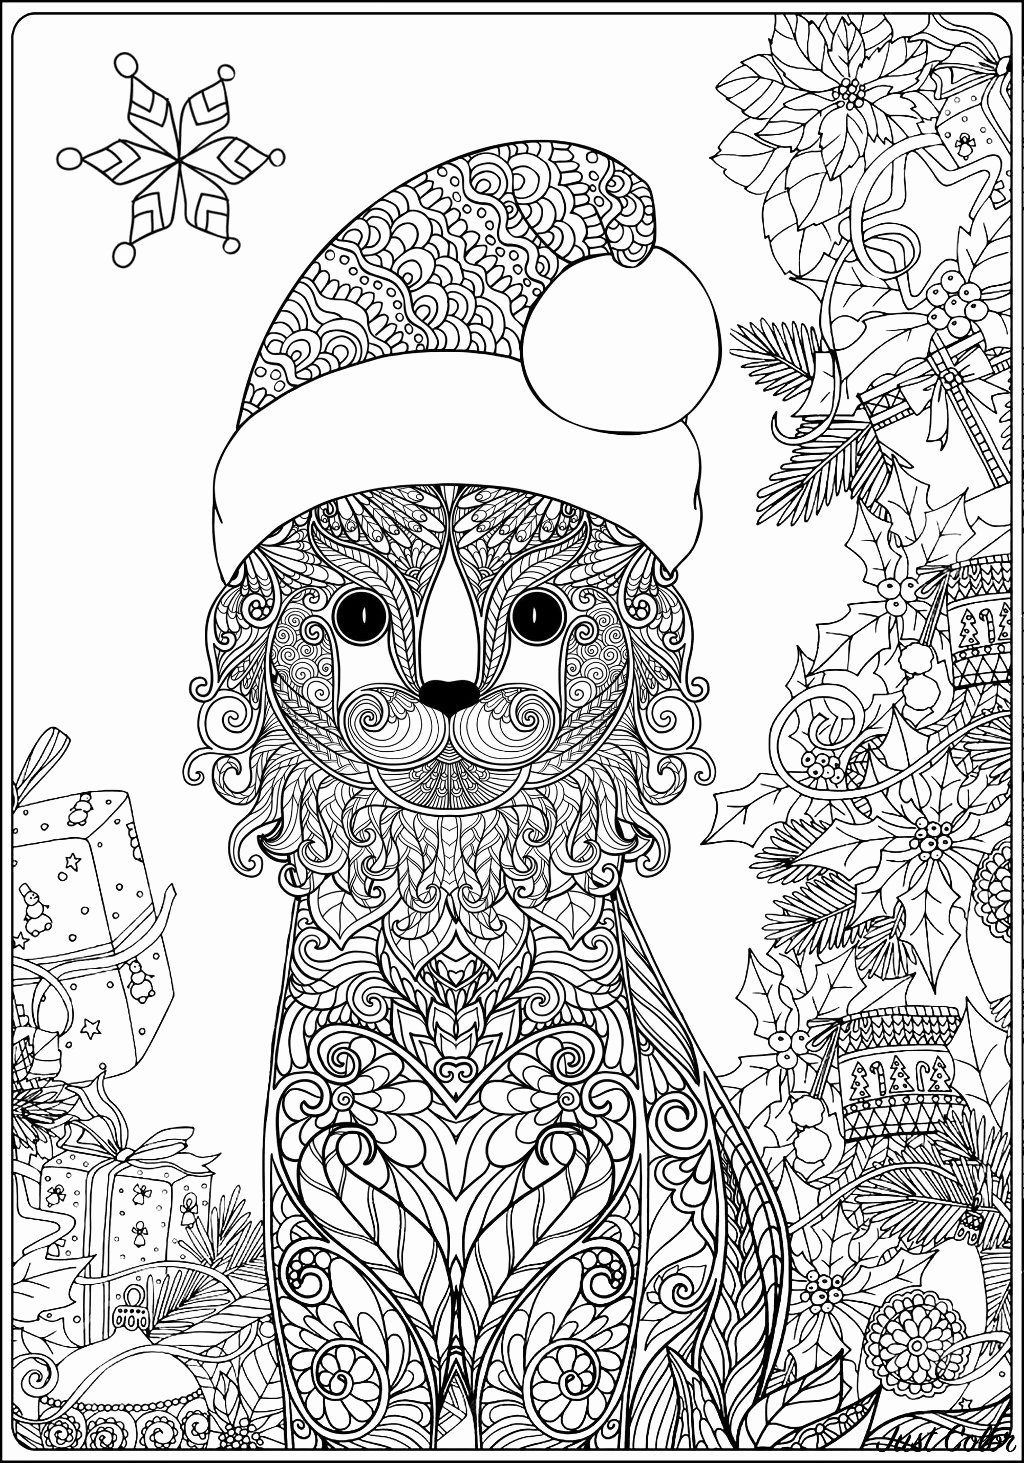 Cat Christmas Coloring Page Inspirational Christmas Cat With Ts Long Version Without Text In 2020 Cartoon Coloring Pages Christmas Colors Coloring Pages